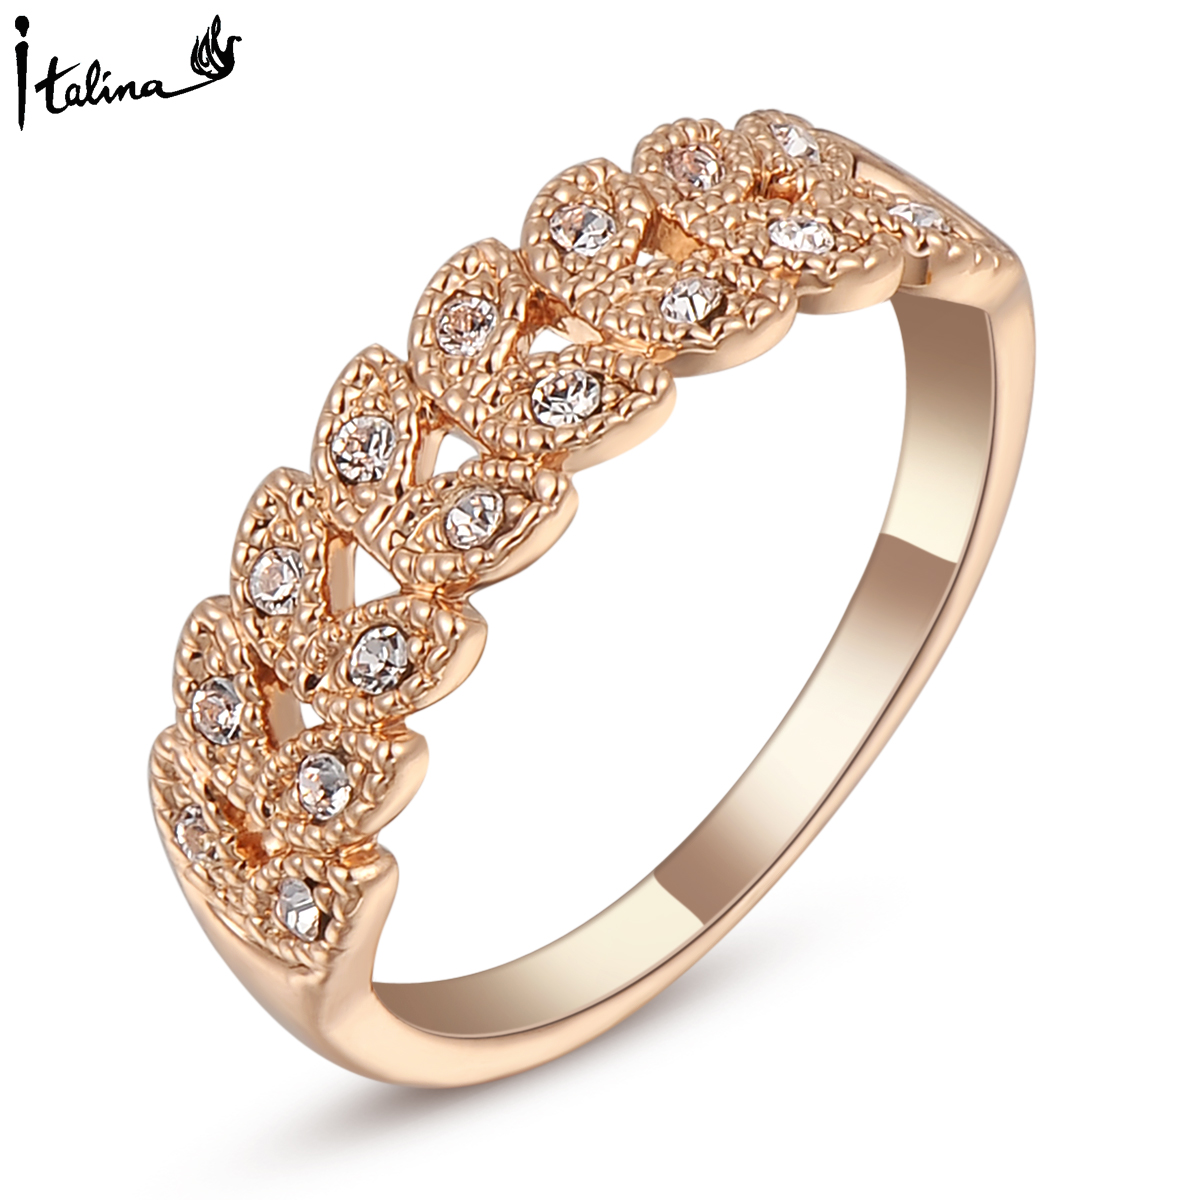 Brand TracysWing Rings for women Genuine Austrian Crystal 18KRGP Rose Gold Color Vintage Rings New Sale